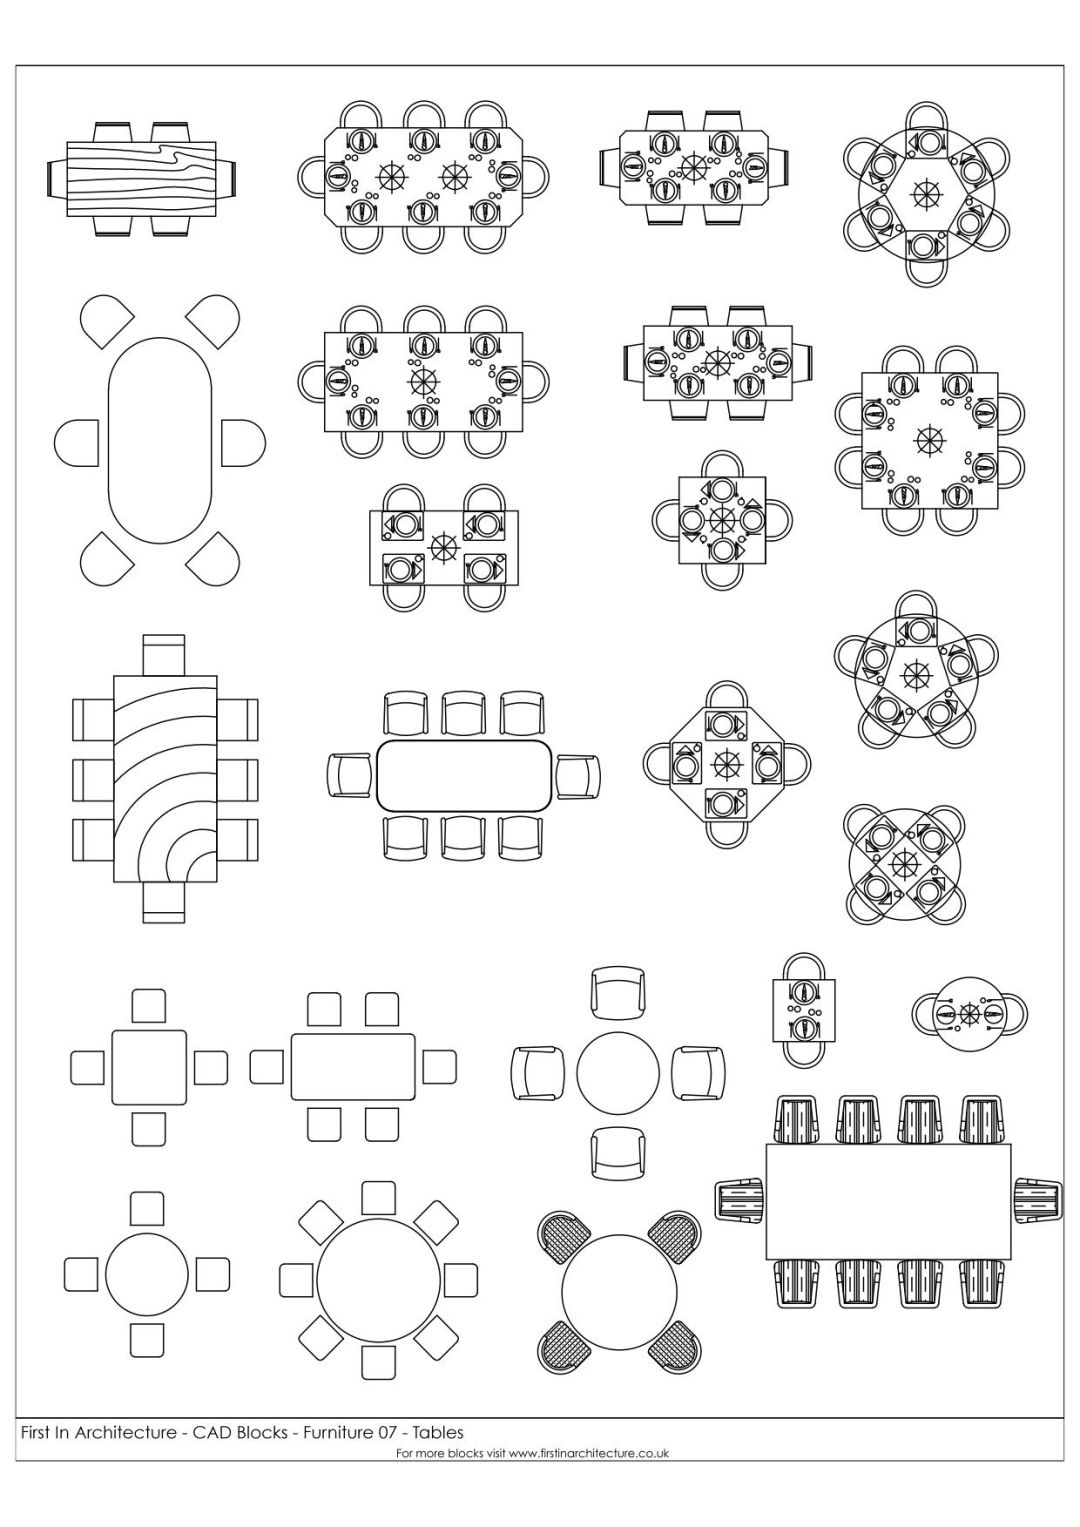 FIA Furniture CAD Blocks 07 Tables